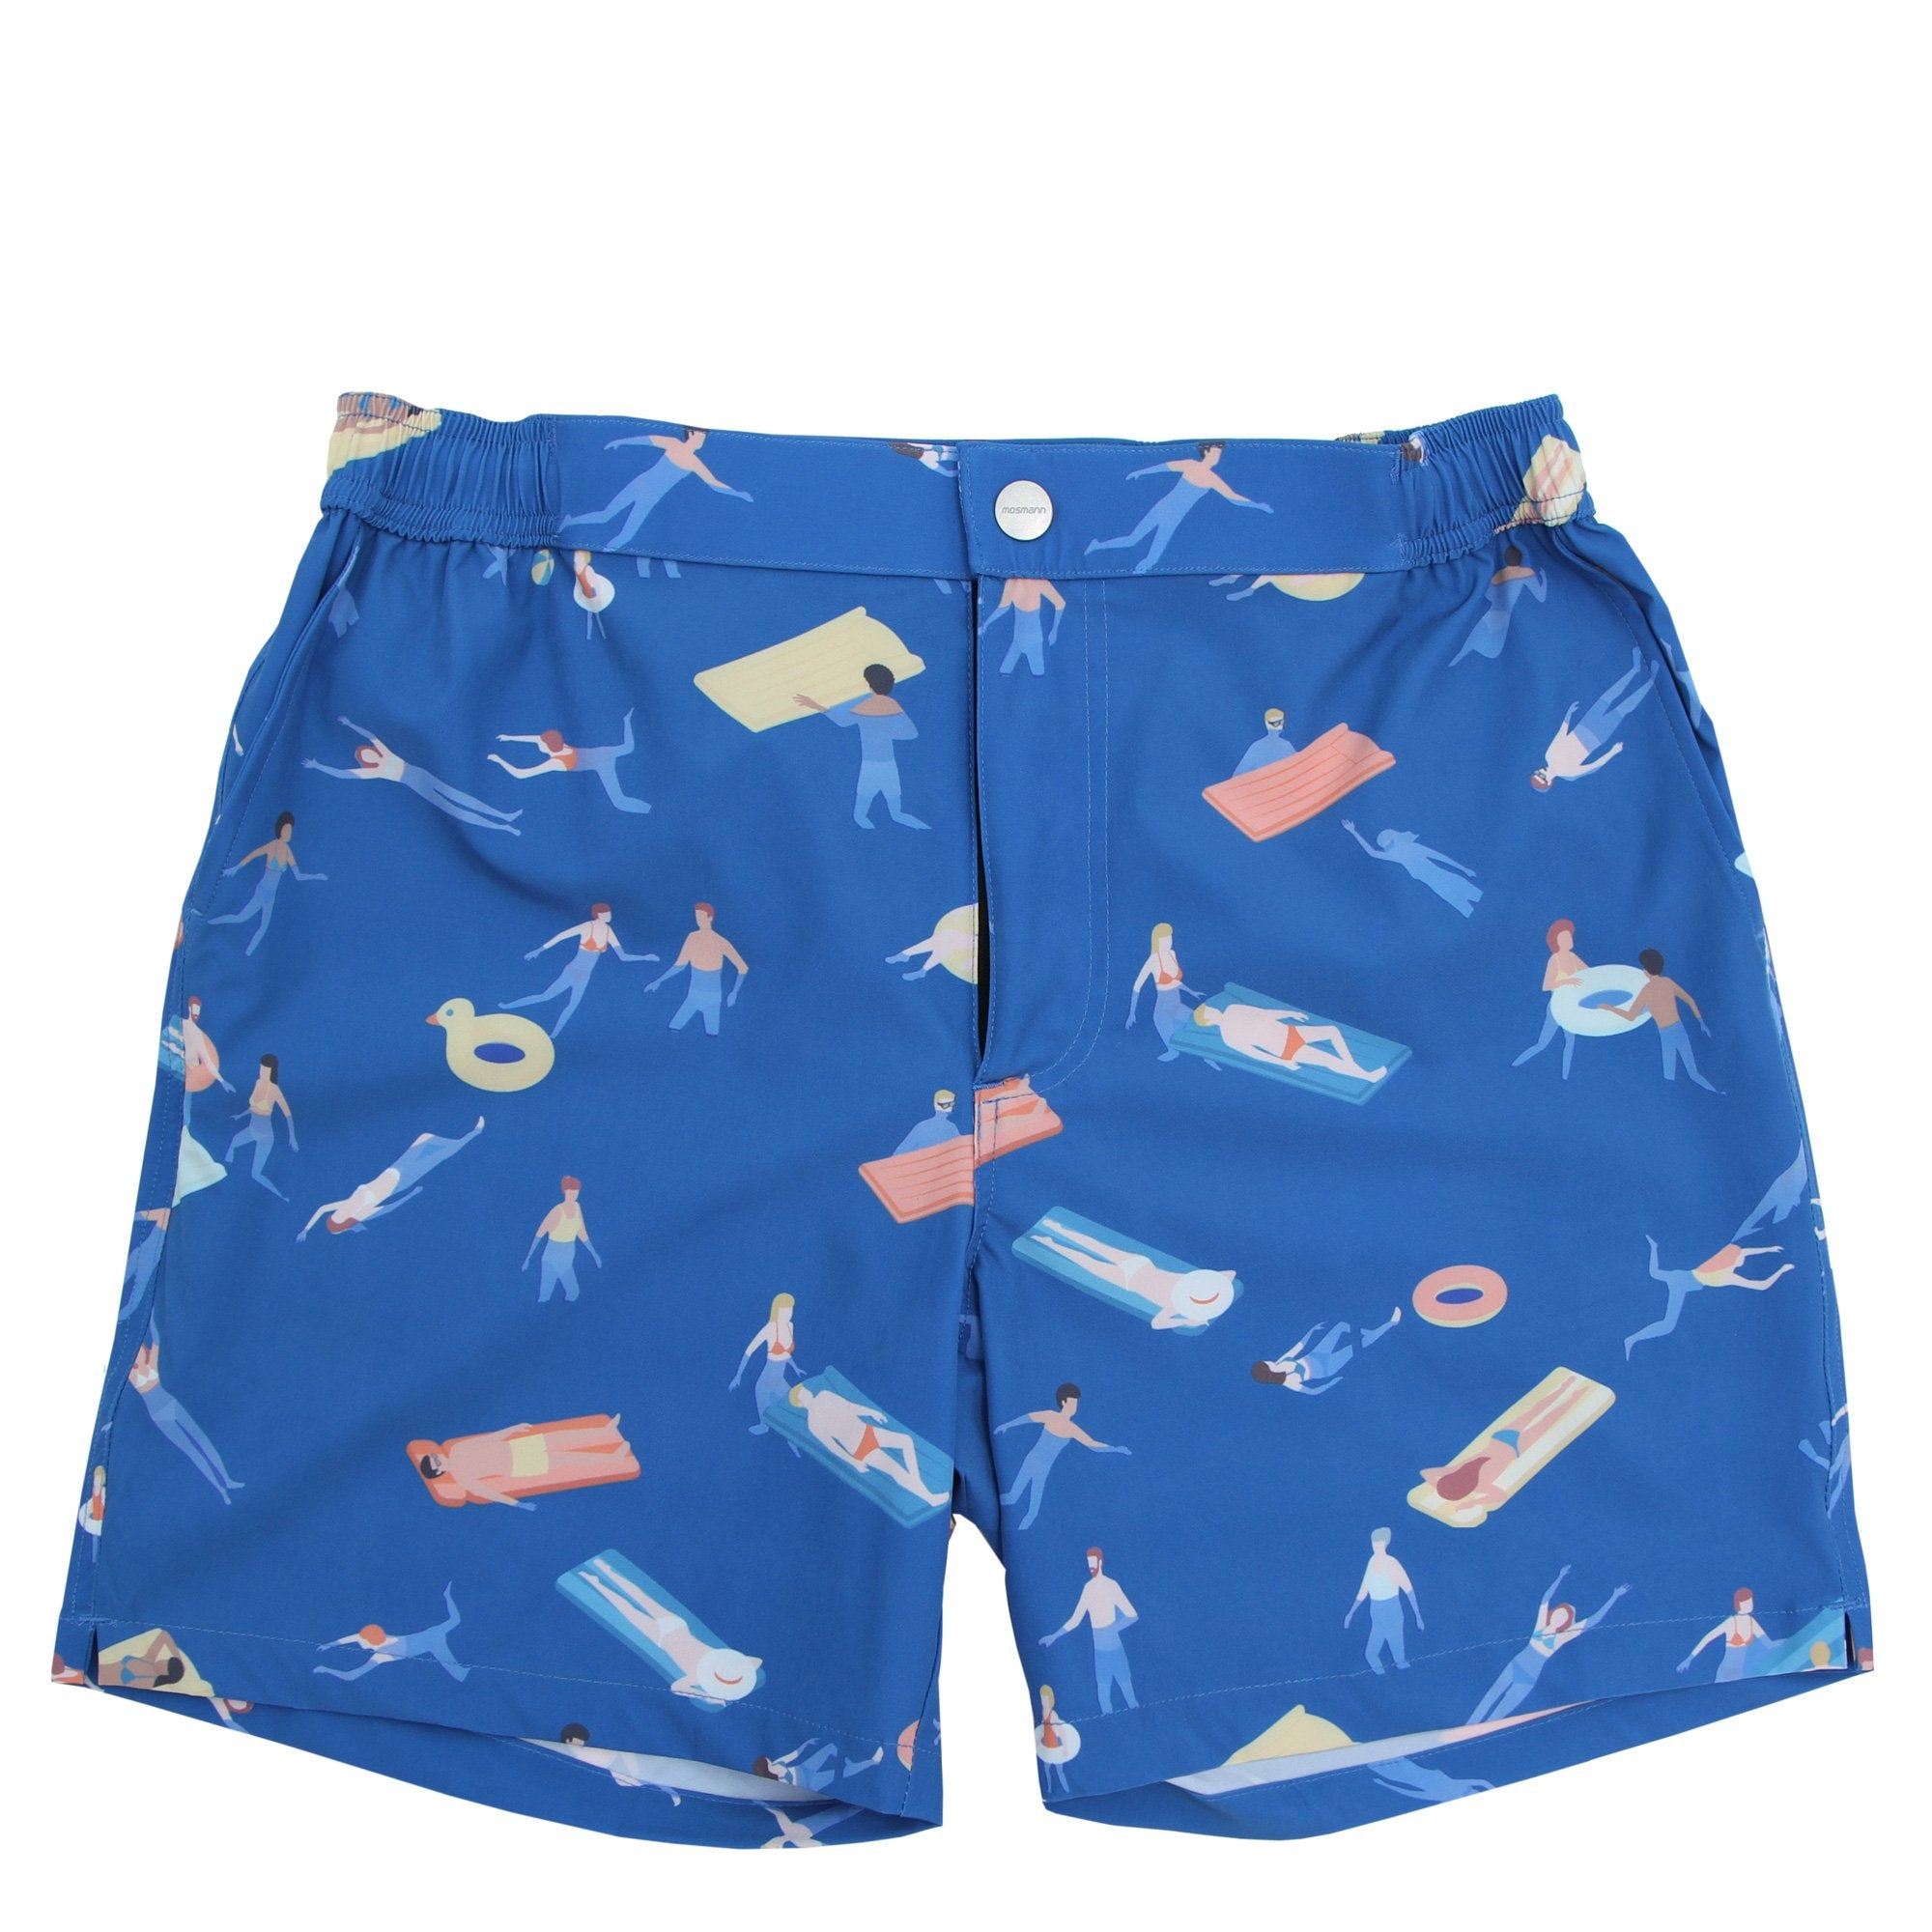 Swimming%20Poolprint%20Swim%20Shorts.jpg